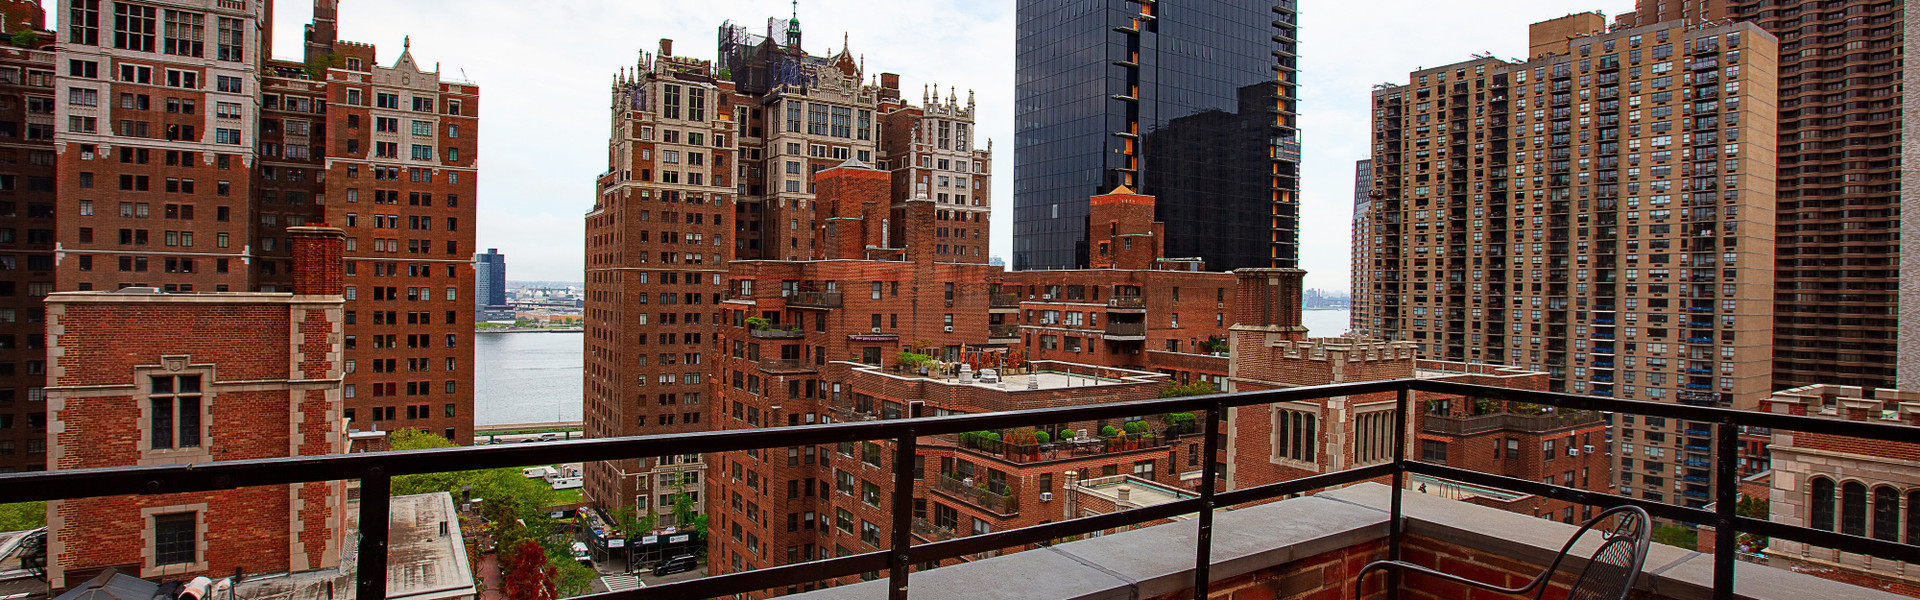 View From Hotel Rooms and Suites at Hotel Close To Grand Central Station | Westgate New York Grand Central